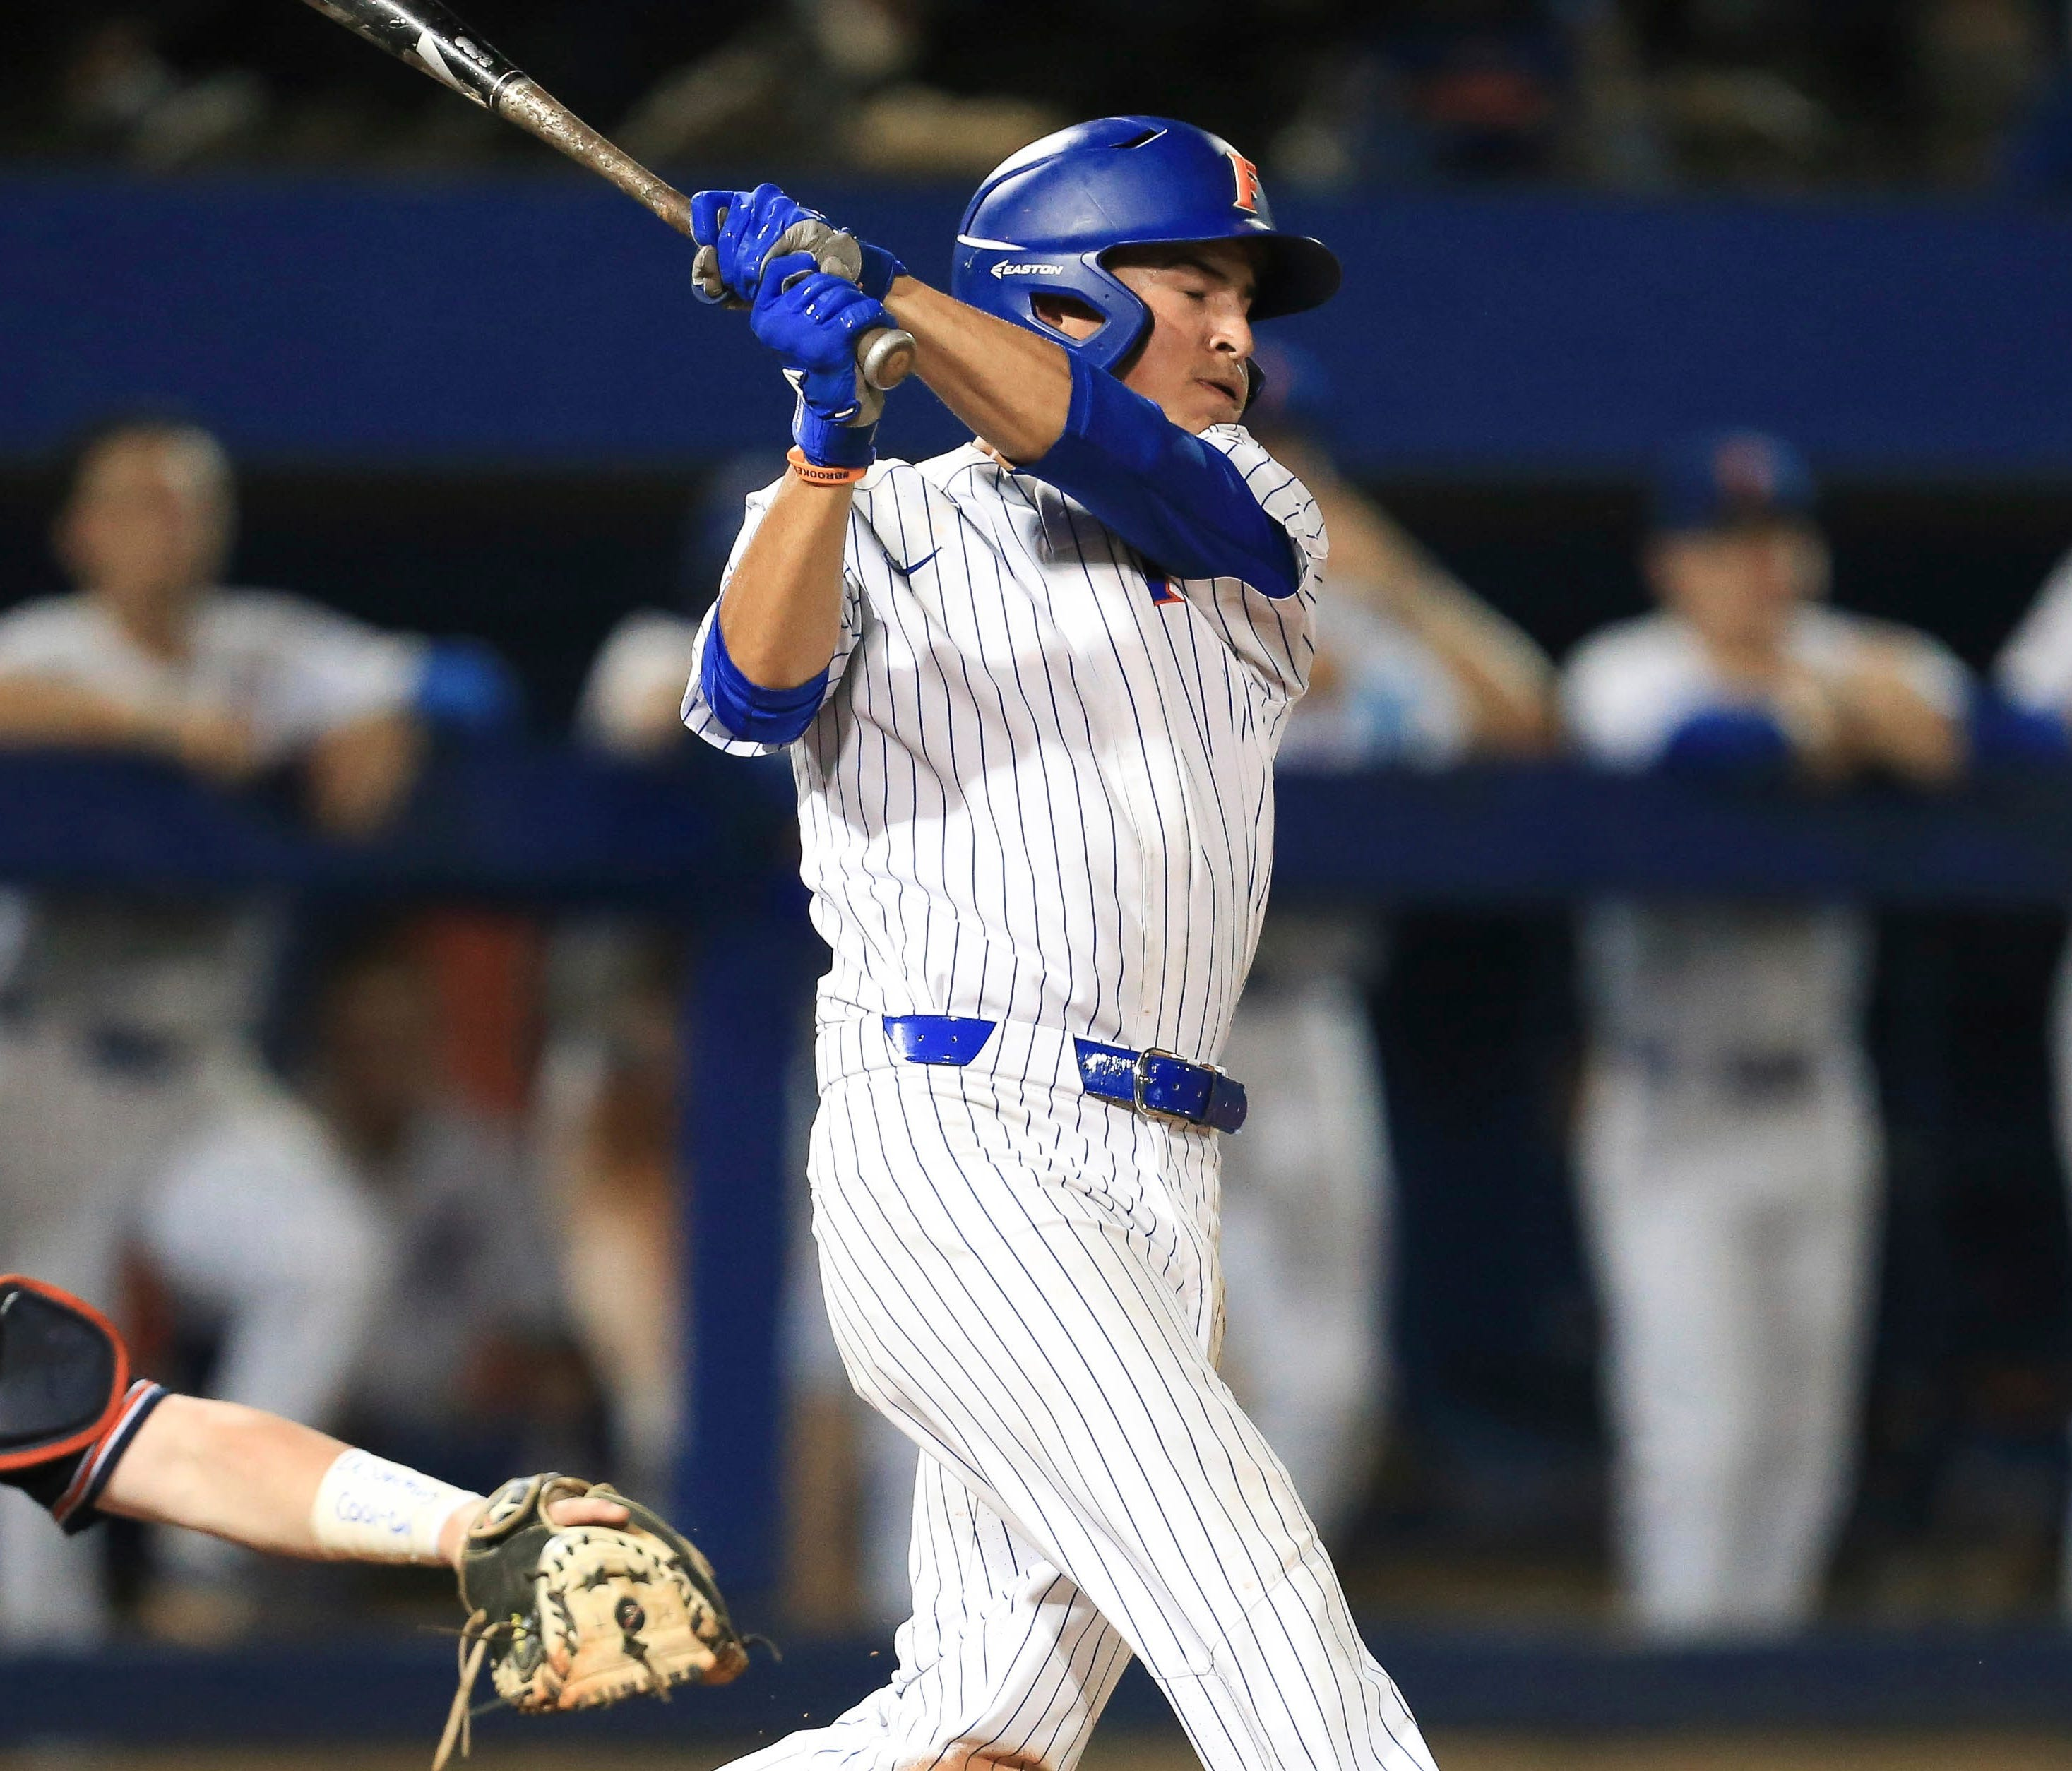 Austin Langworthy connects on the game-winning homer that sent Florida to its fourth straight College World Series.